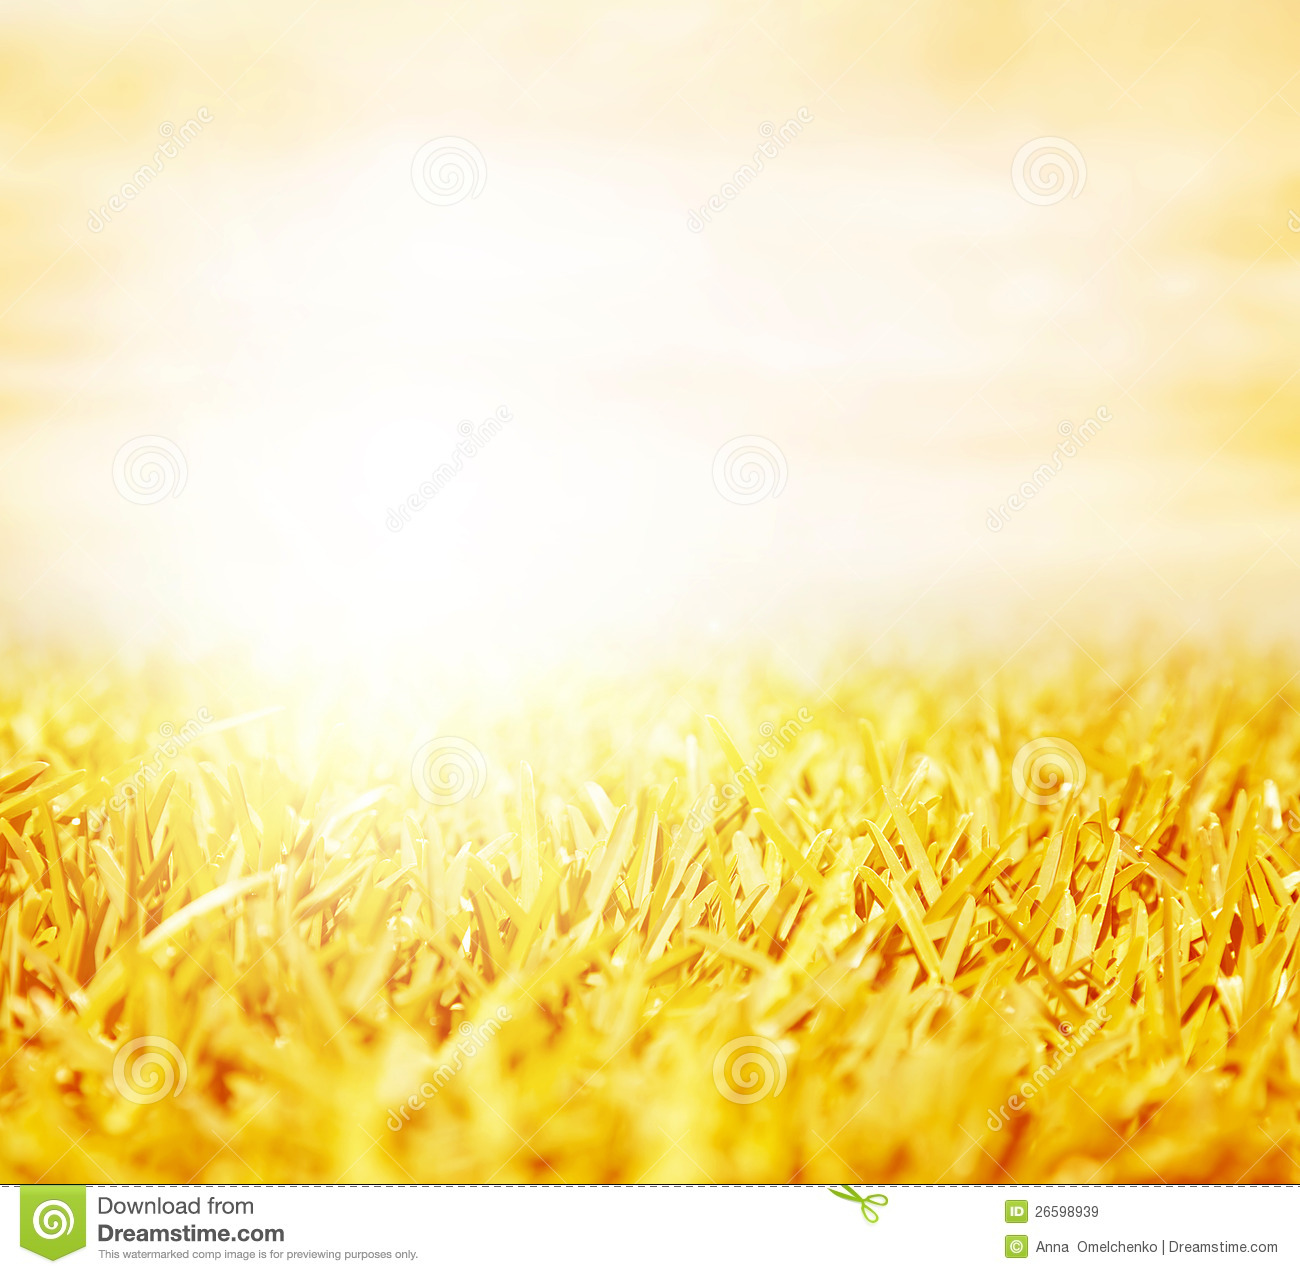 Fall Morning Sun Wallpaper Wheat Field Stock Image Image Of Meadow Autumn Nature